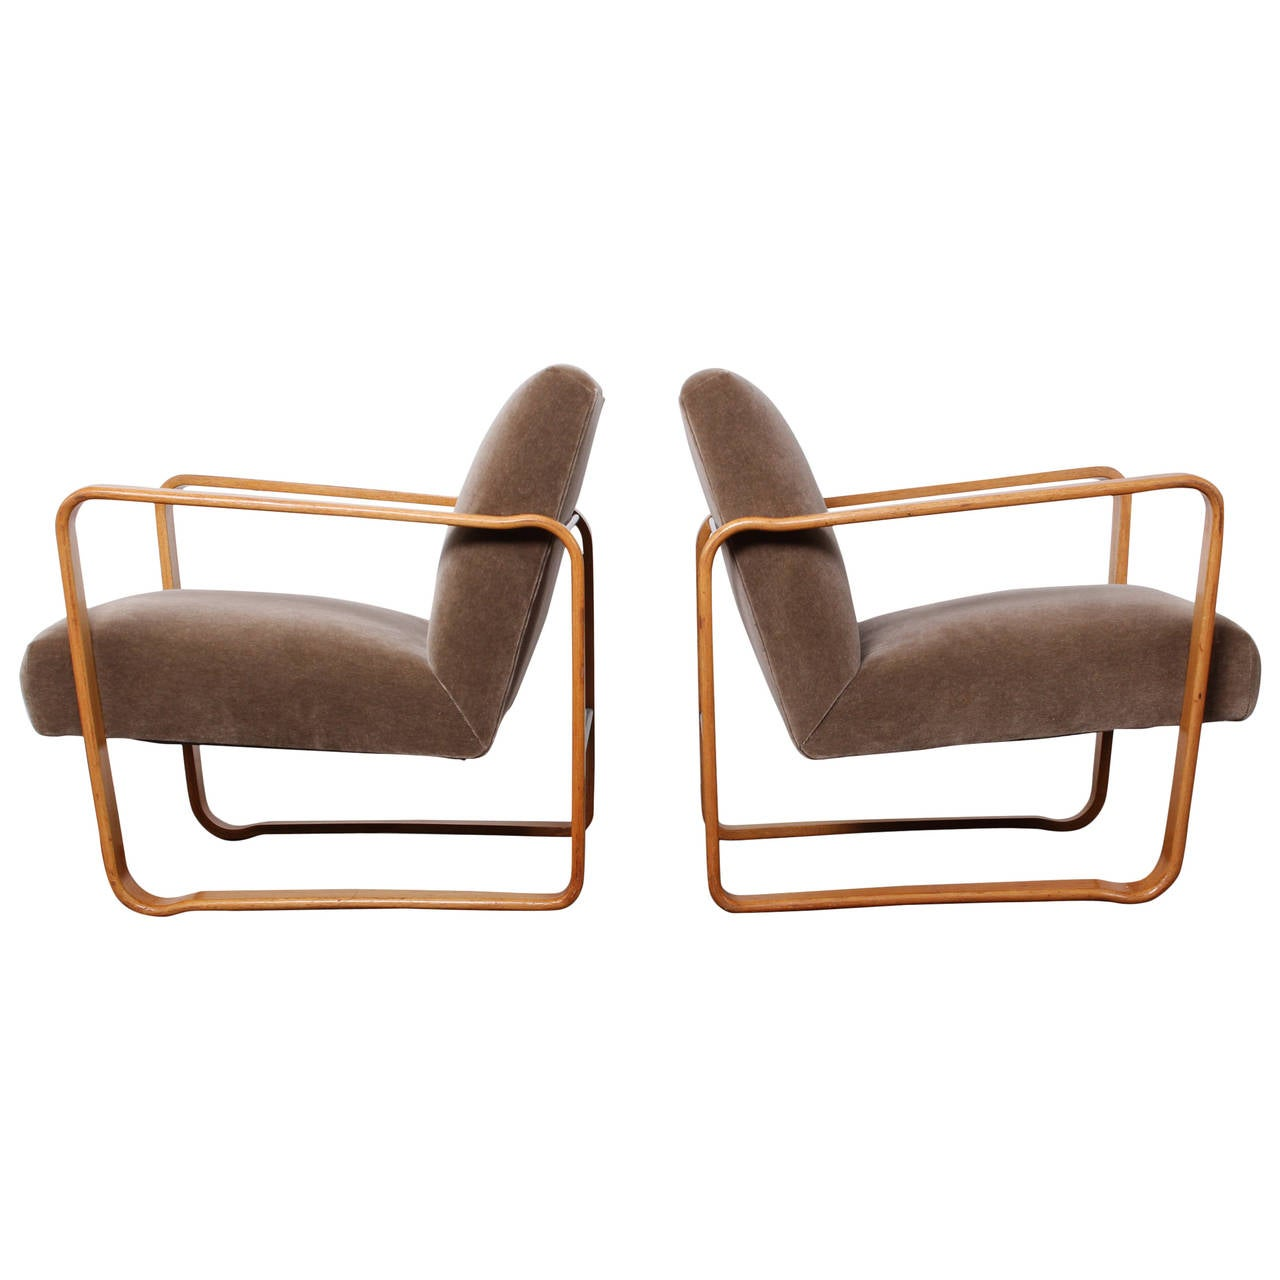 Pair of tank chairs by edward wormley for dunbar at 1stdibs - Edward wormley chairs ...